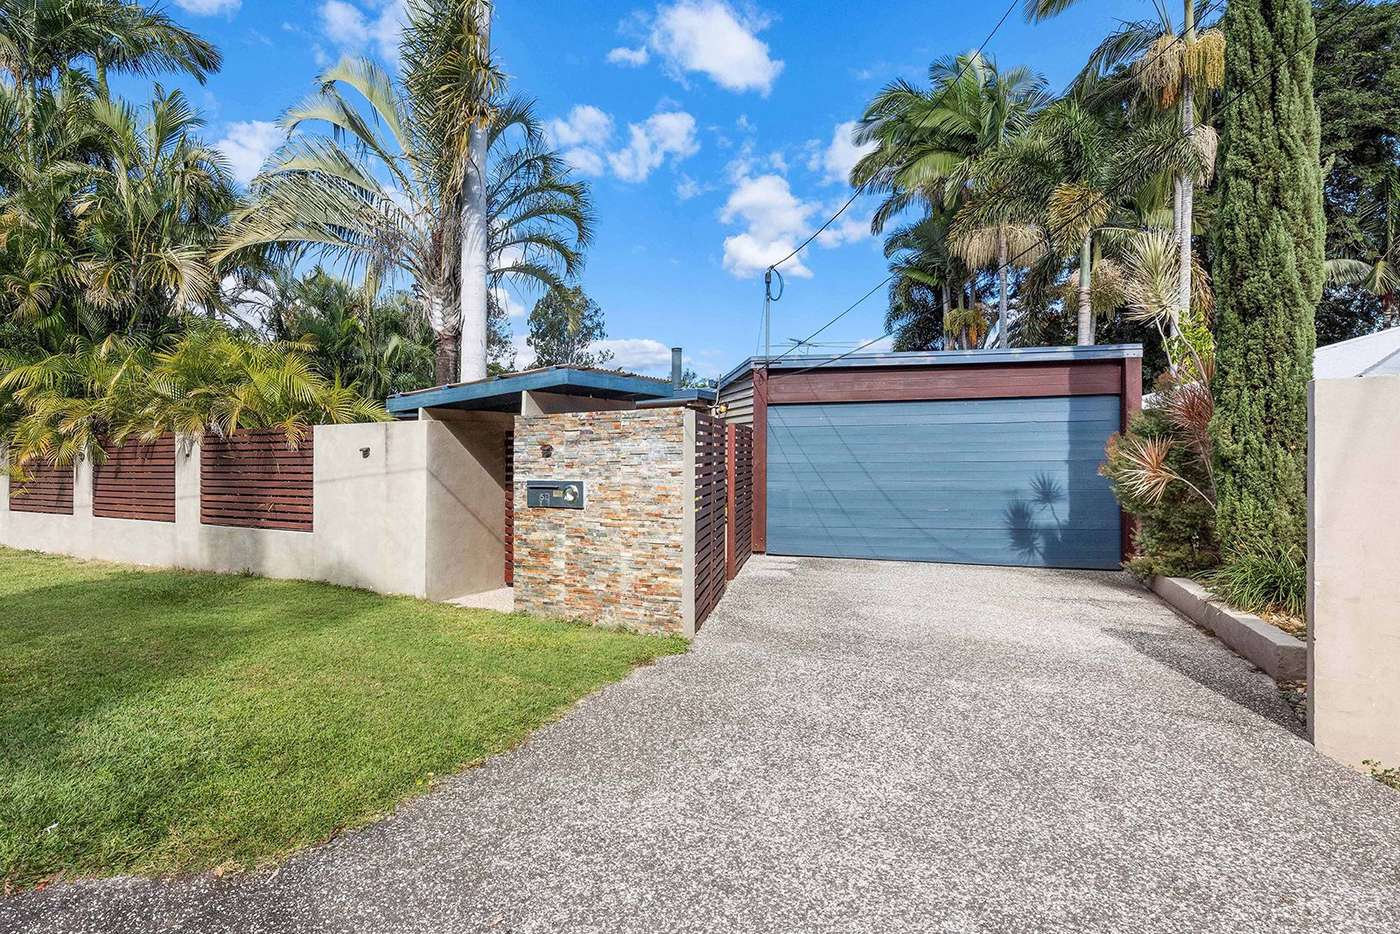 Main view of Homely house listing, 52 Kooringal Drive, Jindalee QLD 4074